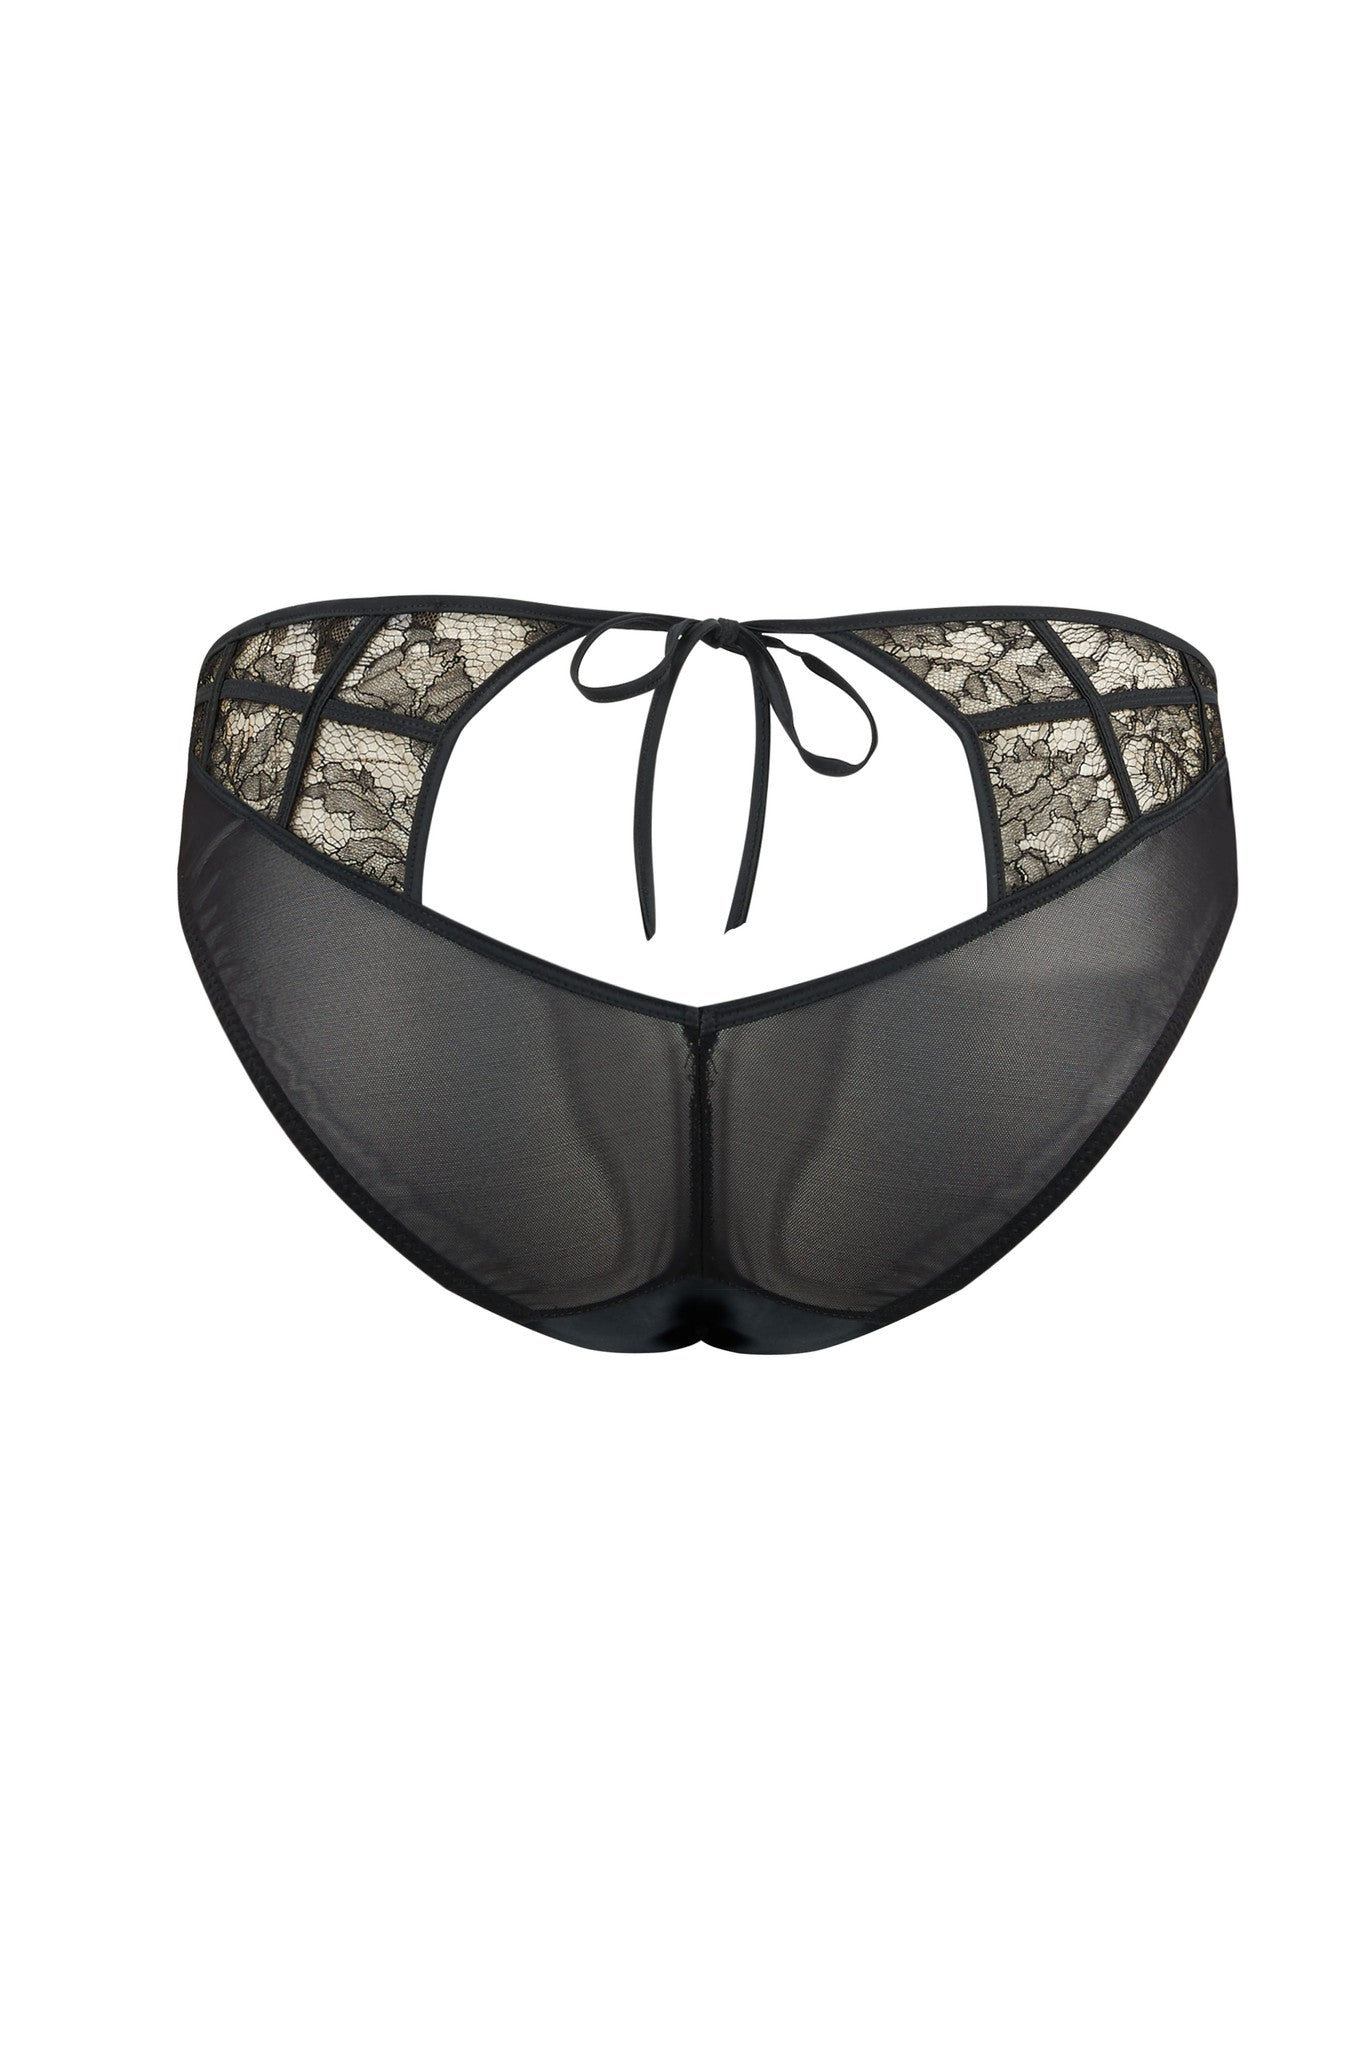 Sheer black ouvert back brief with luxury lace panels and tie detail